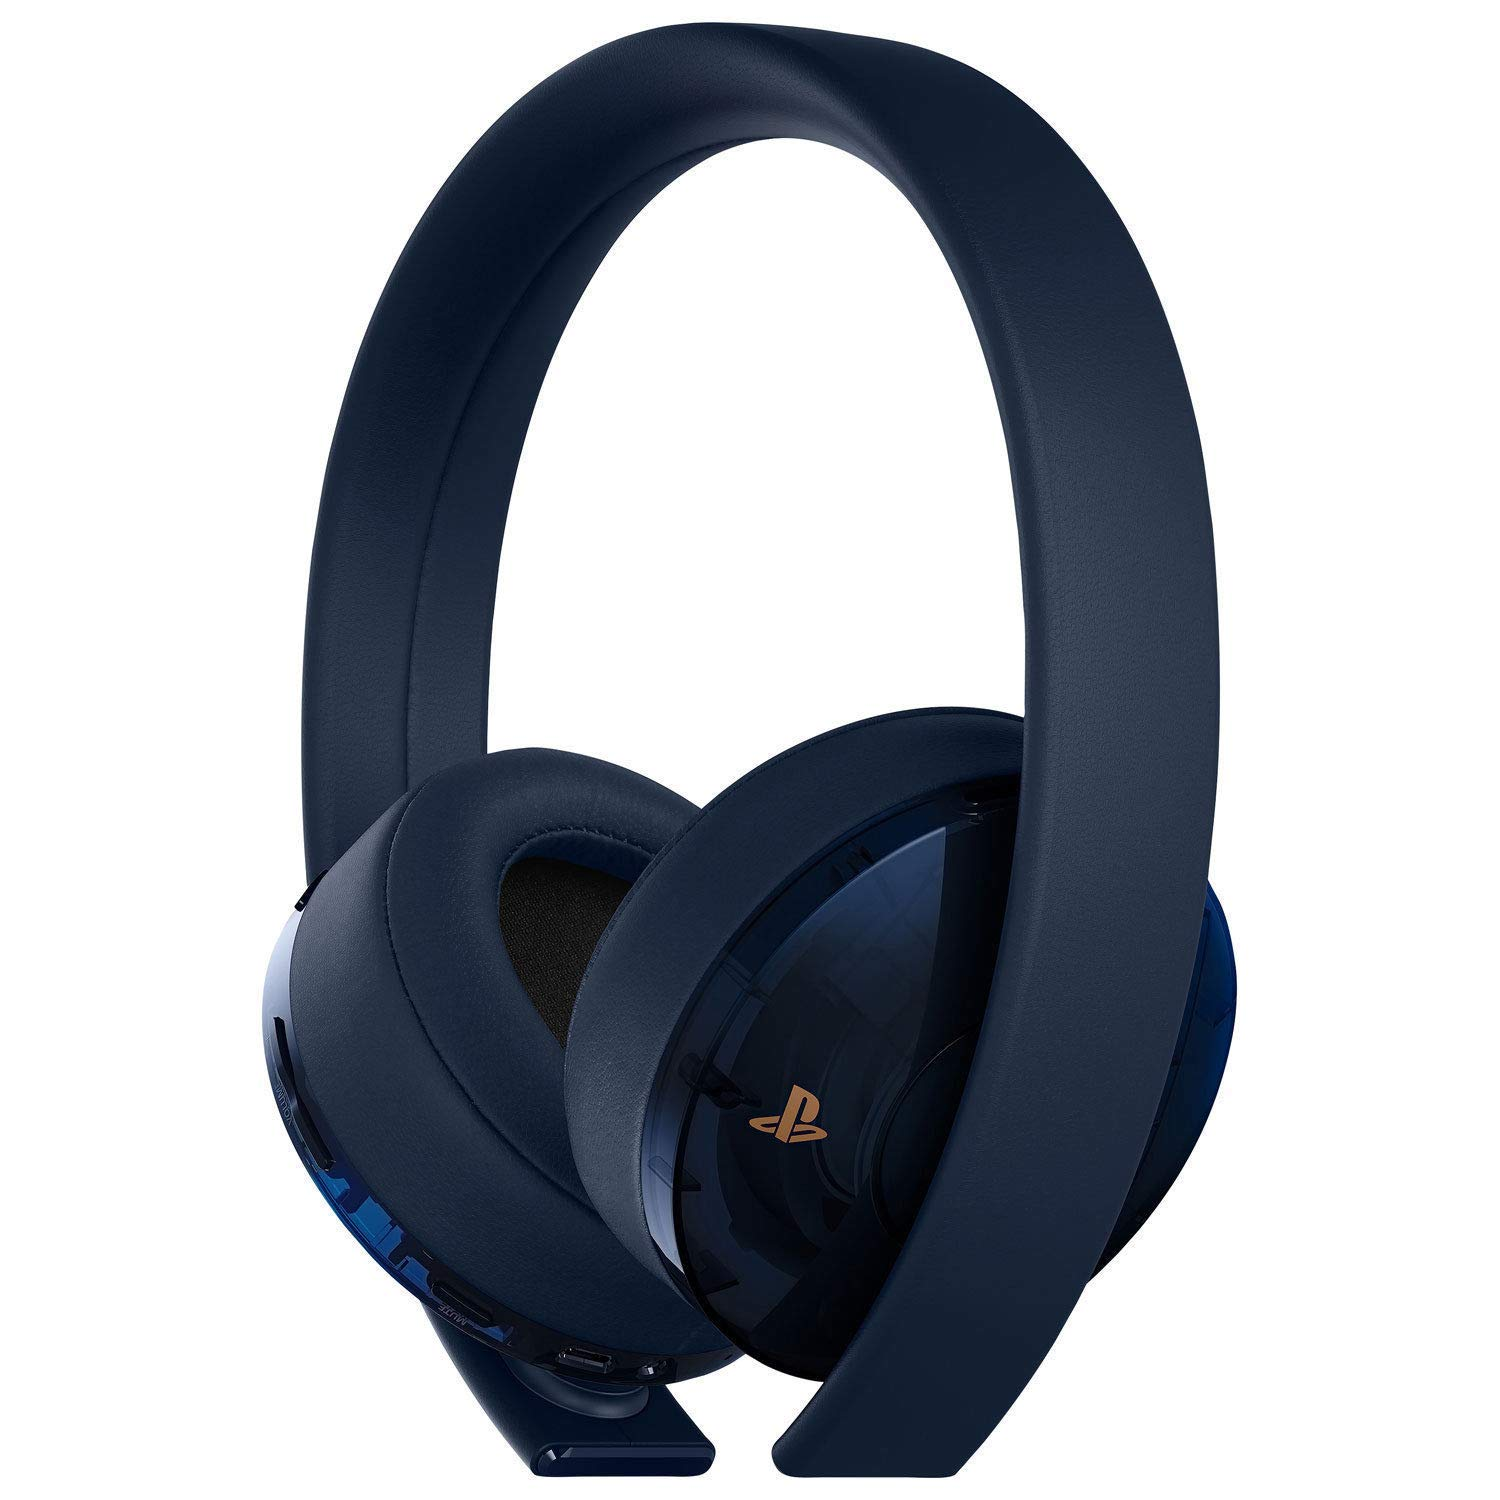 837898f8668 Sony Playstation Gold Wireless Headset Black 500 Million Limited Edition